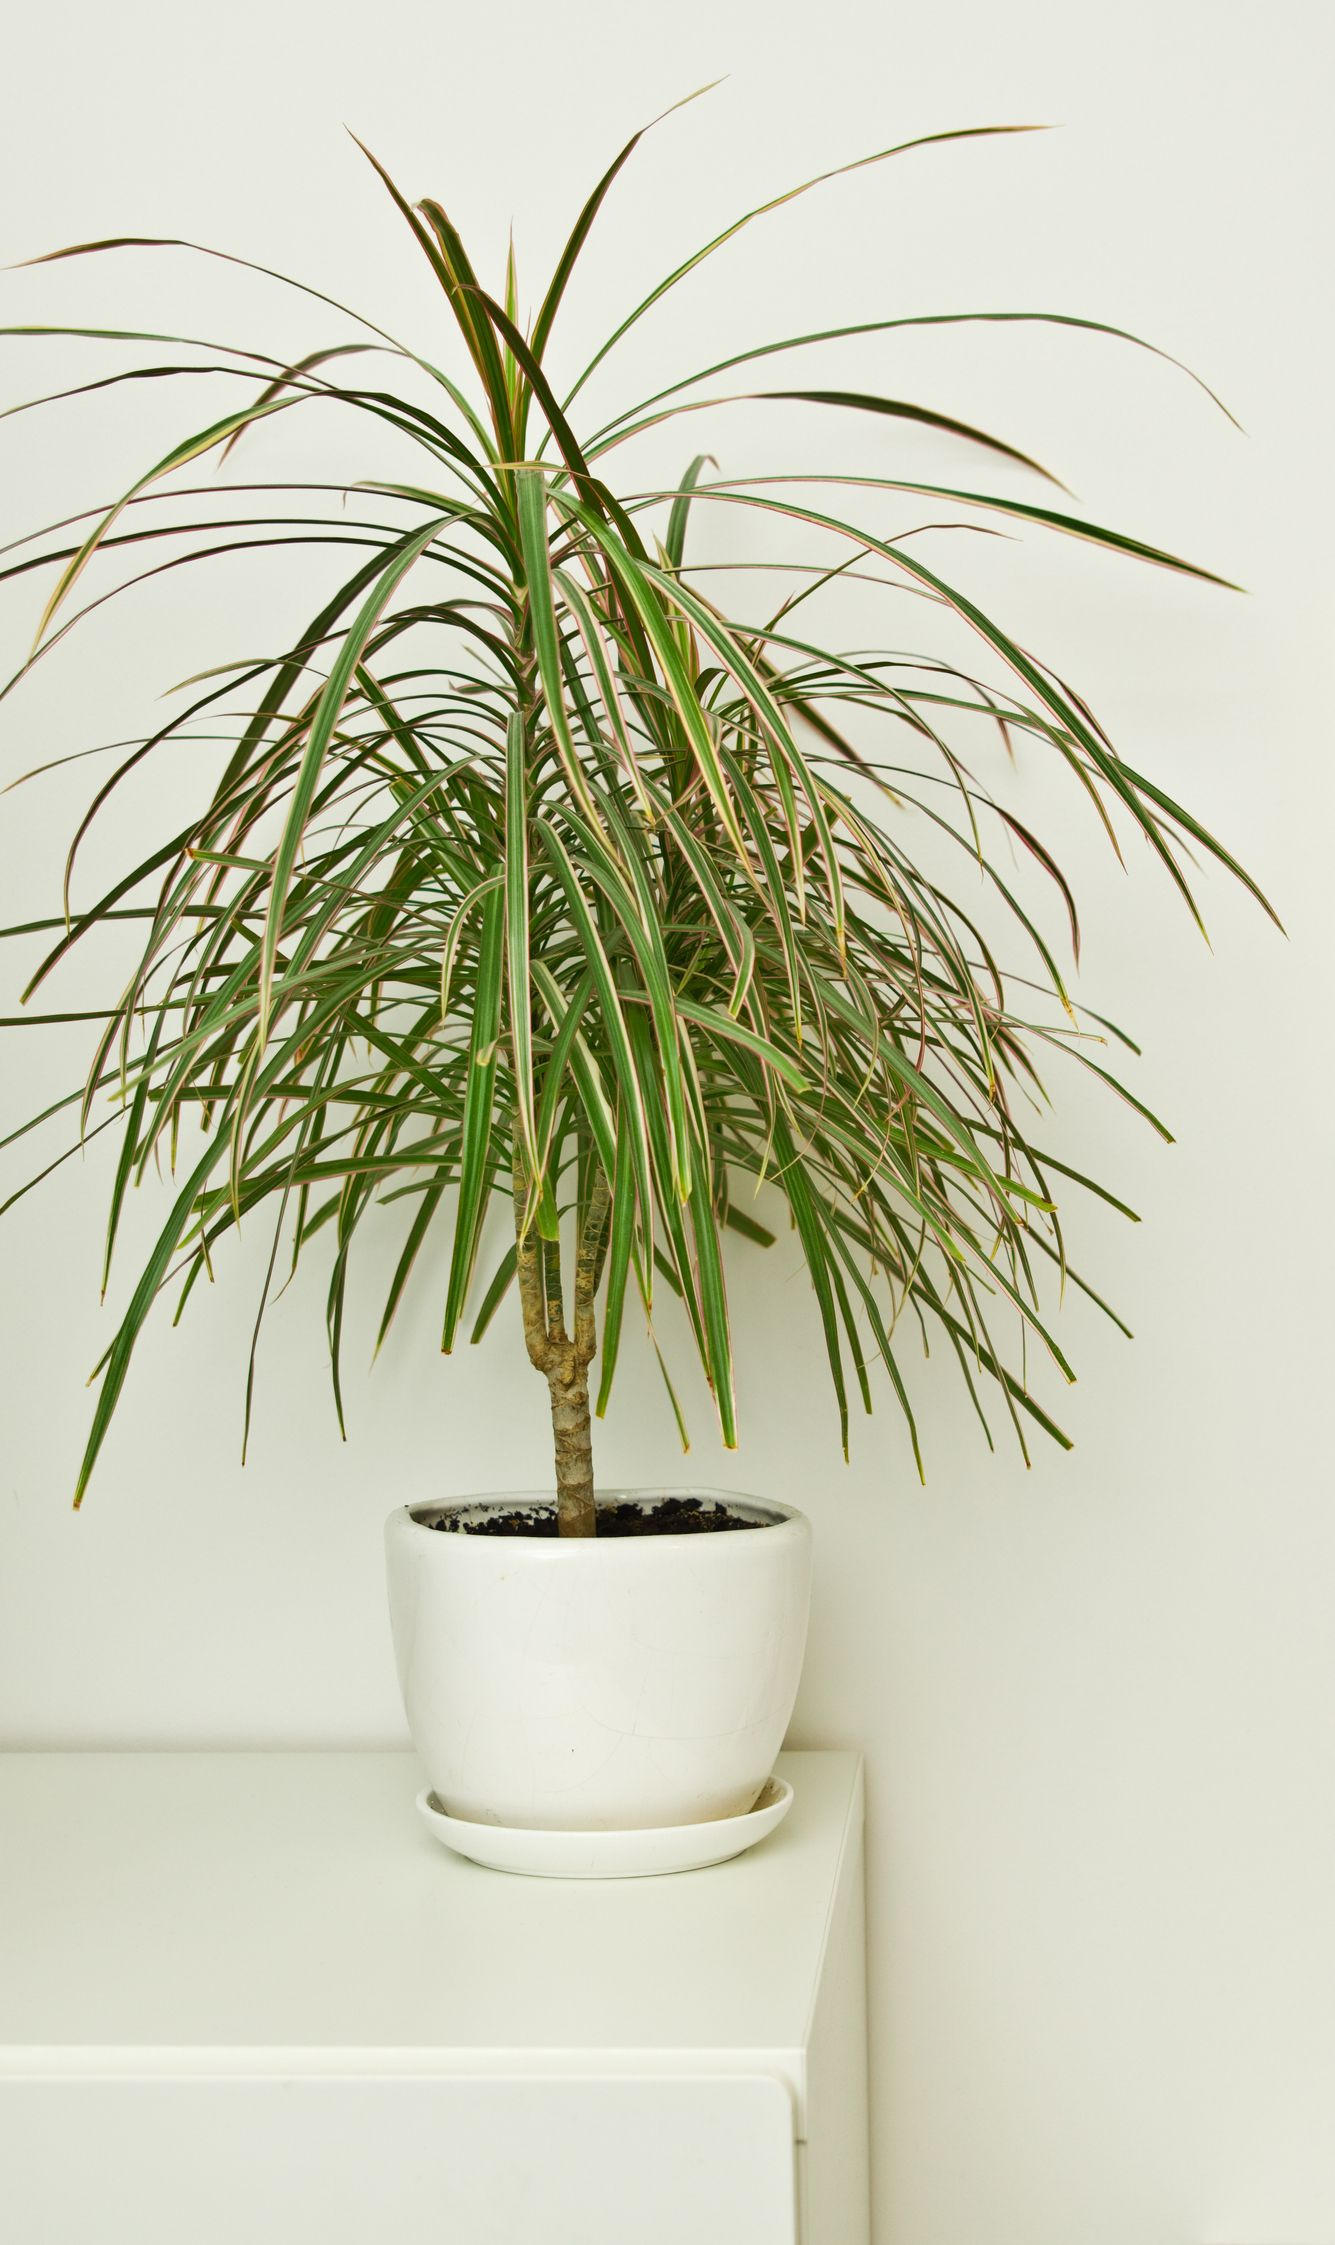 Green pot plant in white room as decoration. Dracaena.